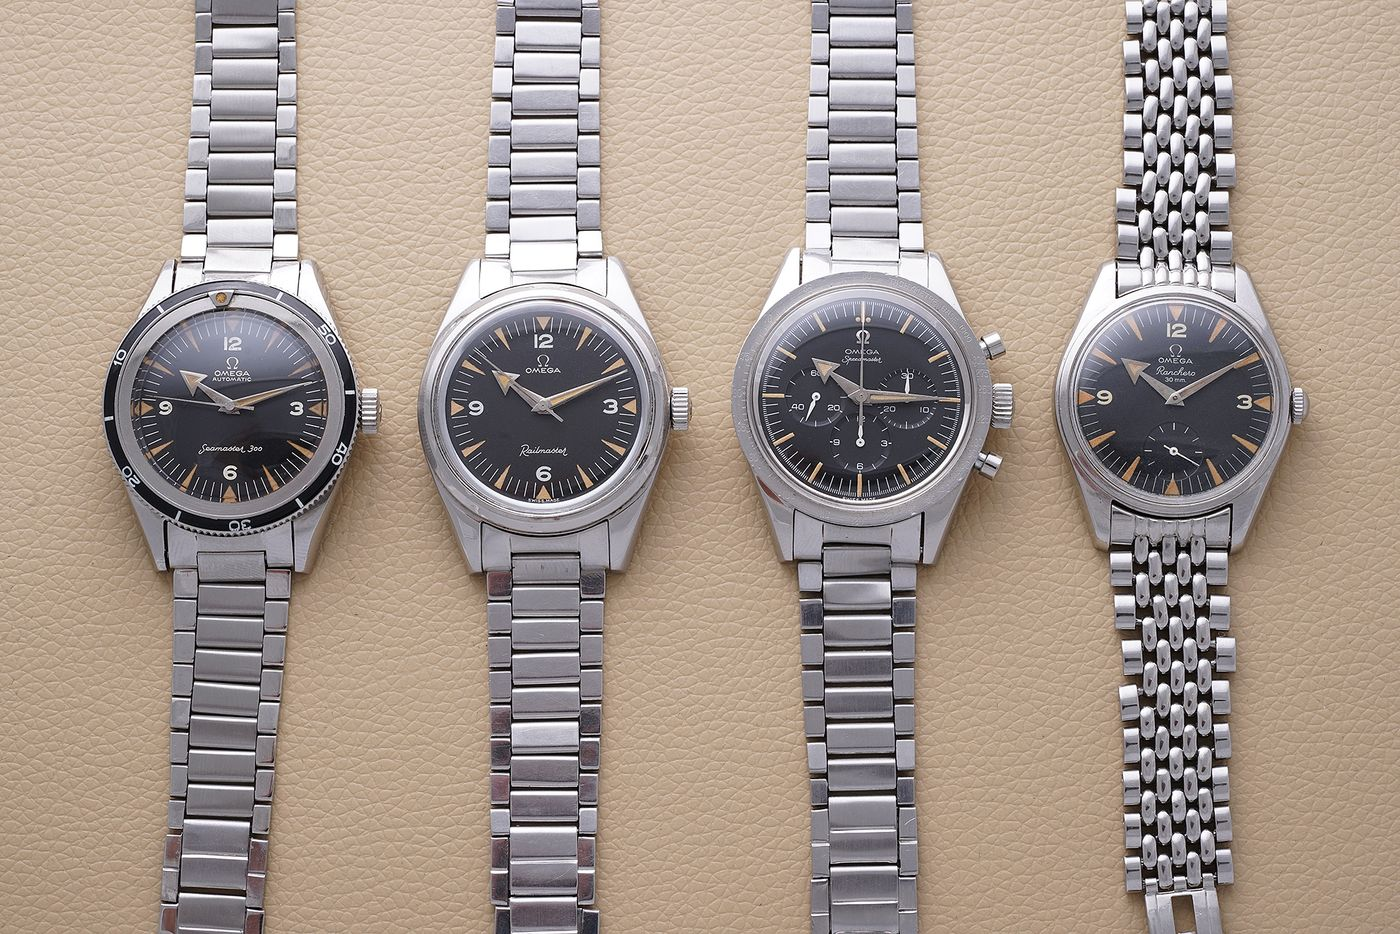 "Known today by collectors as ""The Holy Trinity"", the Seamaster 300 (ref. CK 2913), Railmaster (ref. CK 2914), and the Speedmaster (ref. CK 2915) were introduced in 1957 to make Omega competitive in one of the fastest growing segments of the watch market: professional tool watches. These were followed swiftly with the release of a fourth model, the Ranchero aka ""The Fourth Musketeer"", in 1958. Arthur Touchot breaks down what makes each watch individually unique and explains why together, the ""Broad Arrow"" models form one of the most successful product launches of the 20th century."